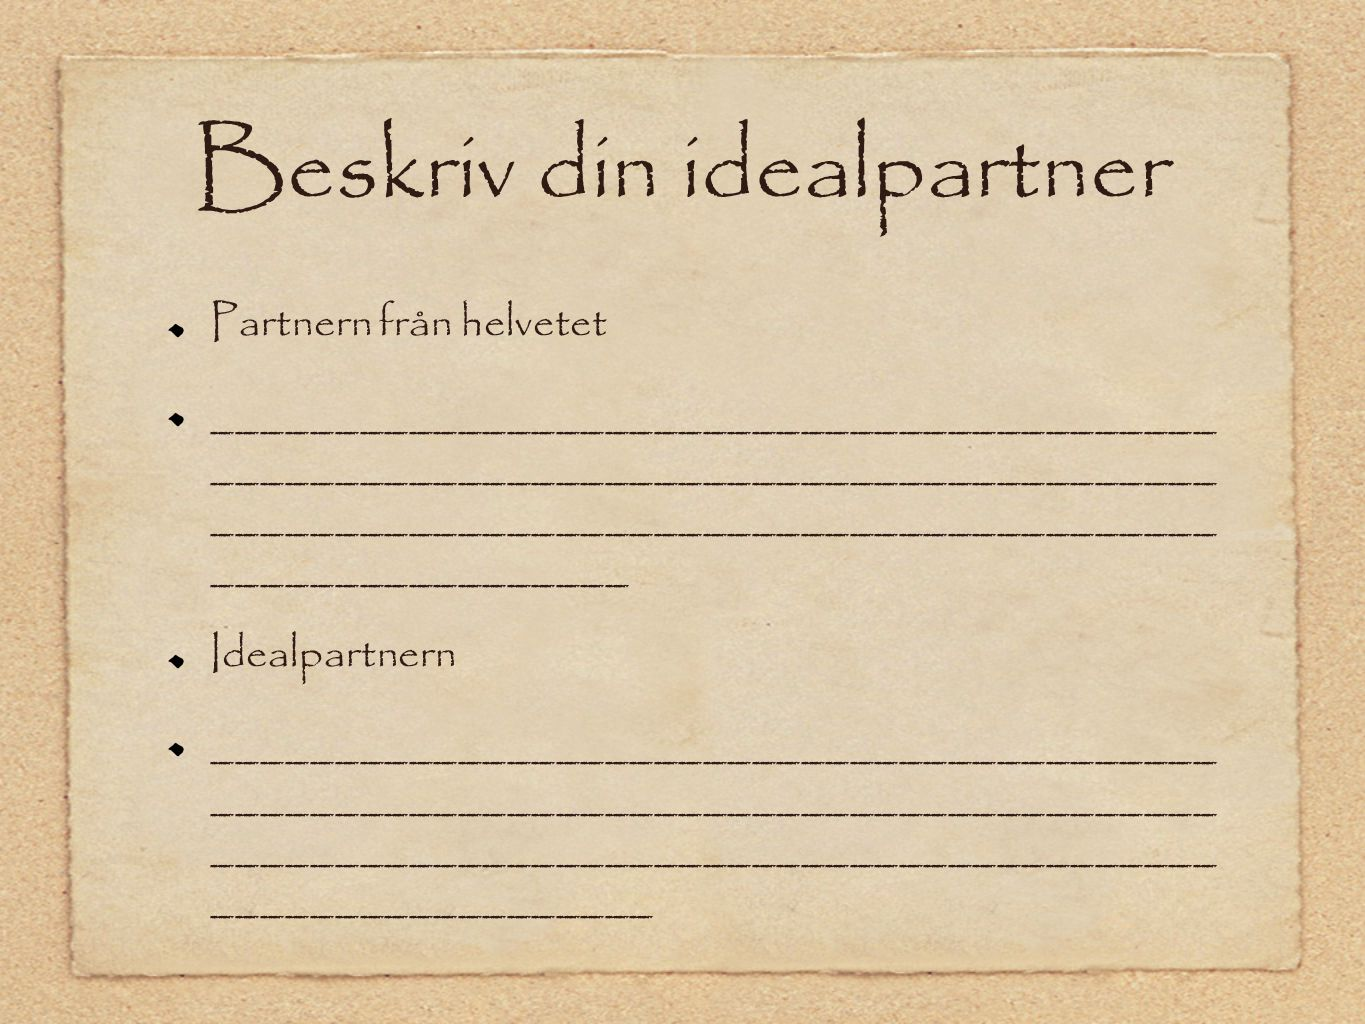 Beskriv din idealpartner